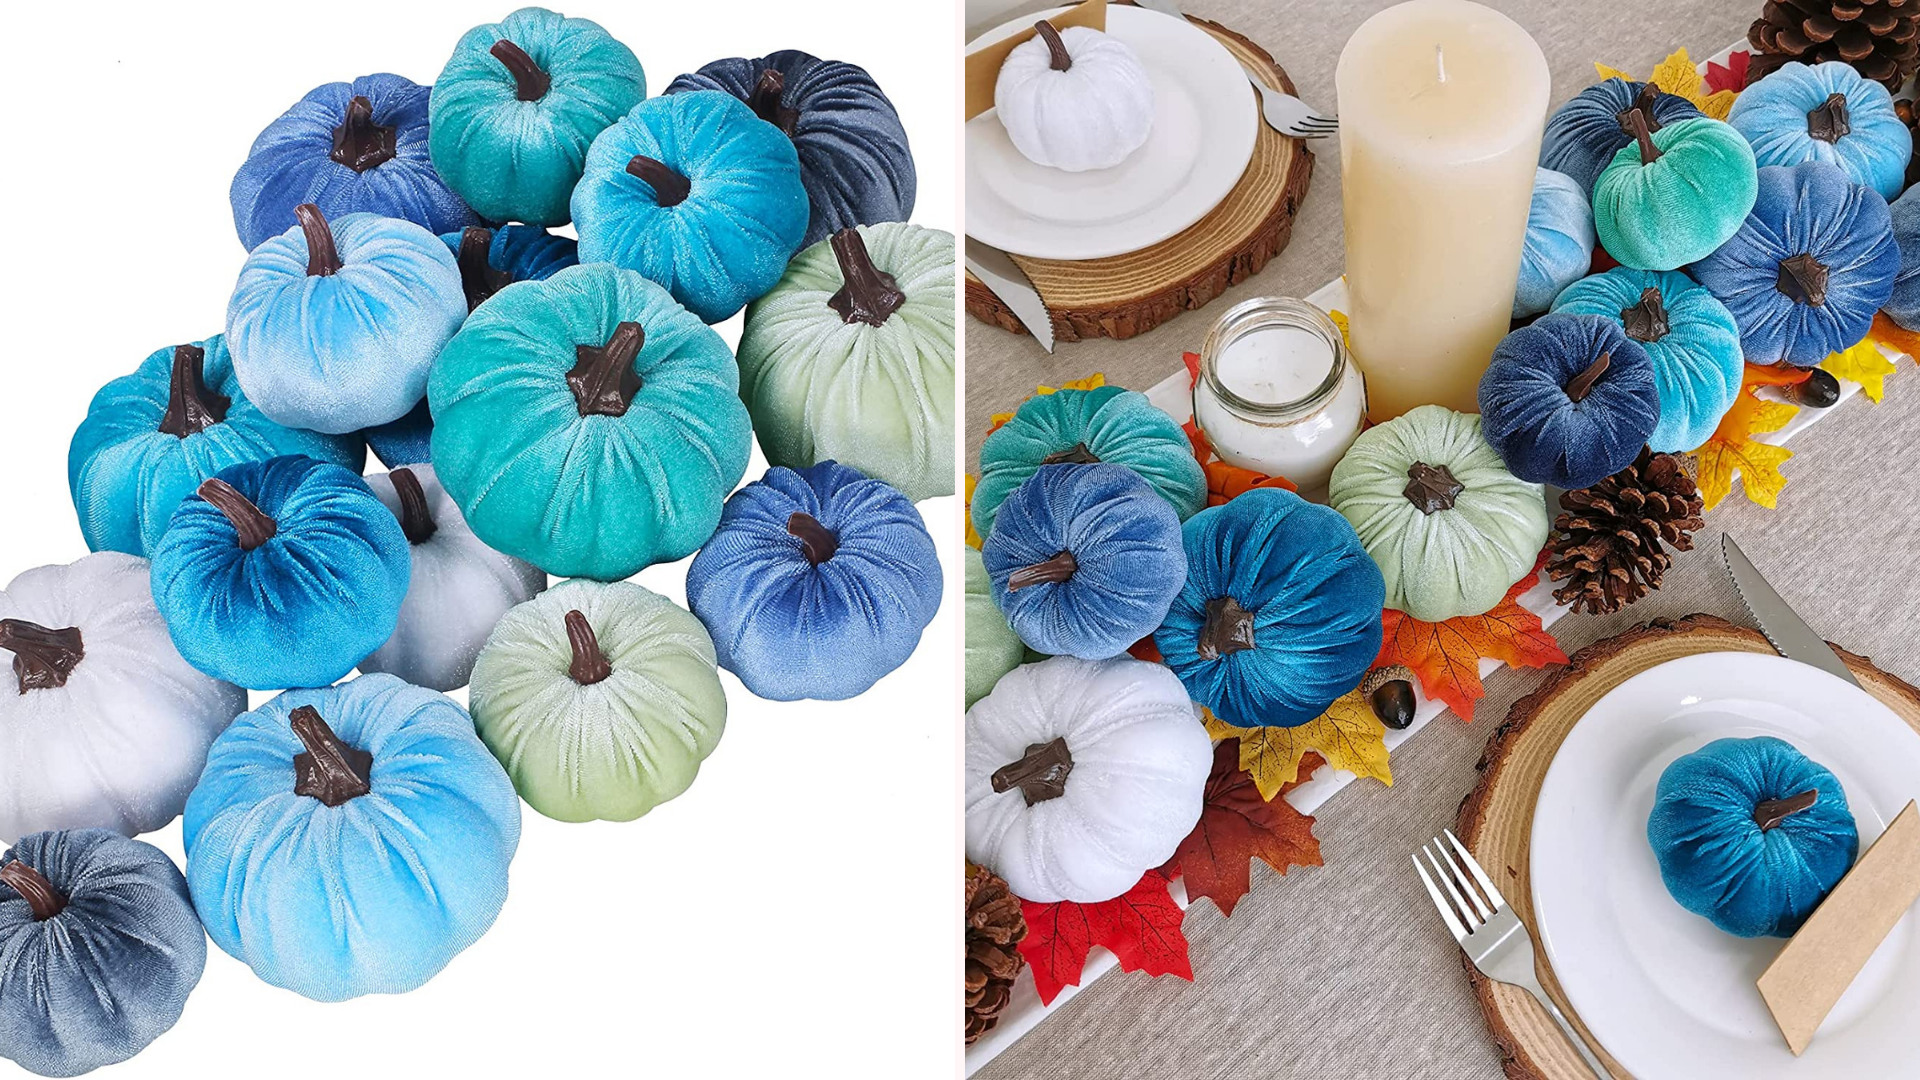 Blue and green colored pumpkins sit in the middle of a table.